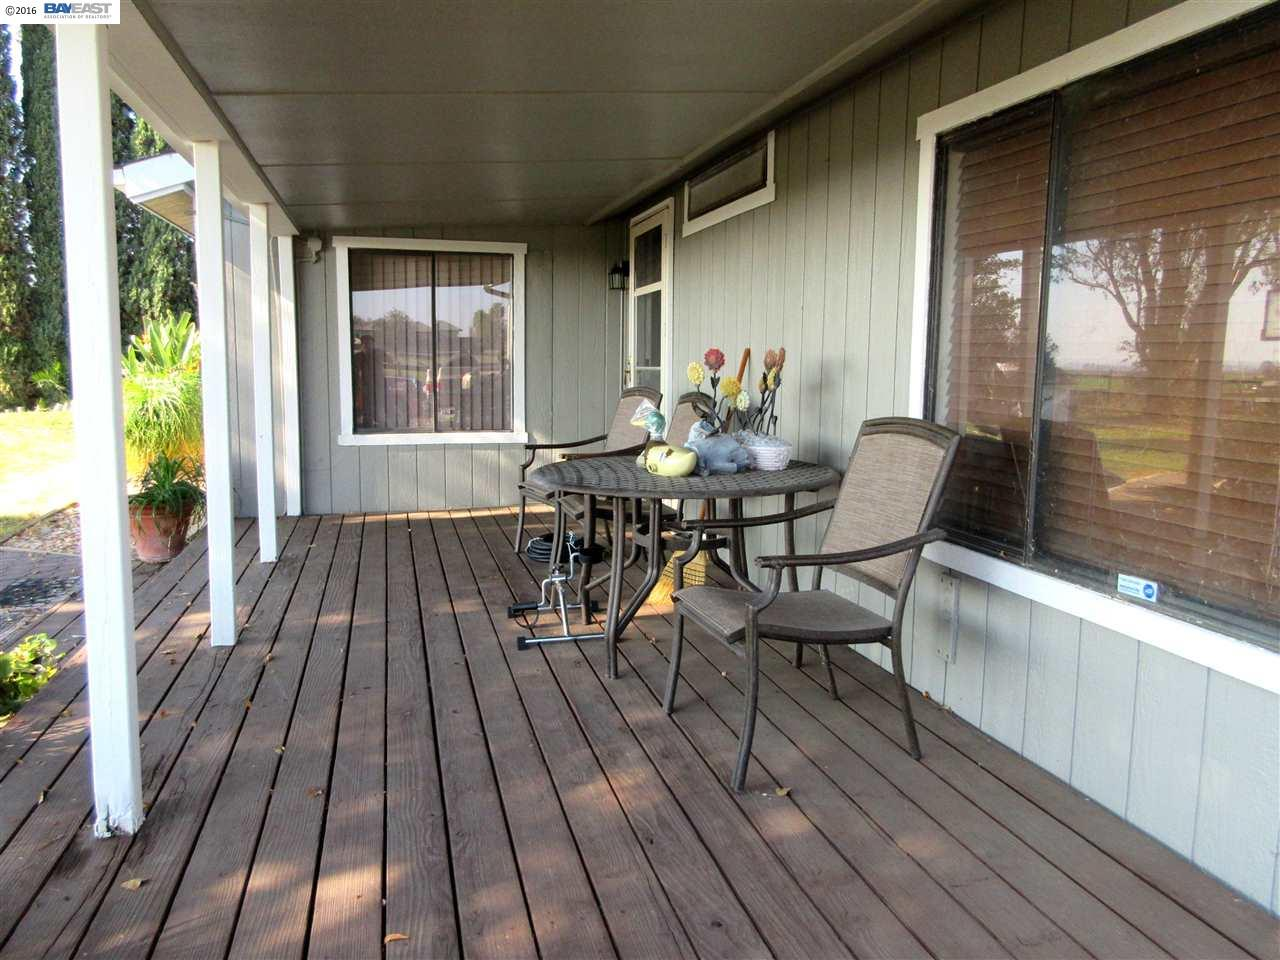 Additional photo for property listing at 12271 W Bethany Road 12271 W Bethany Road Tracy, California 95304 United States